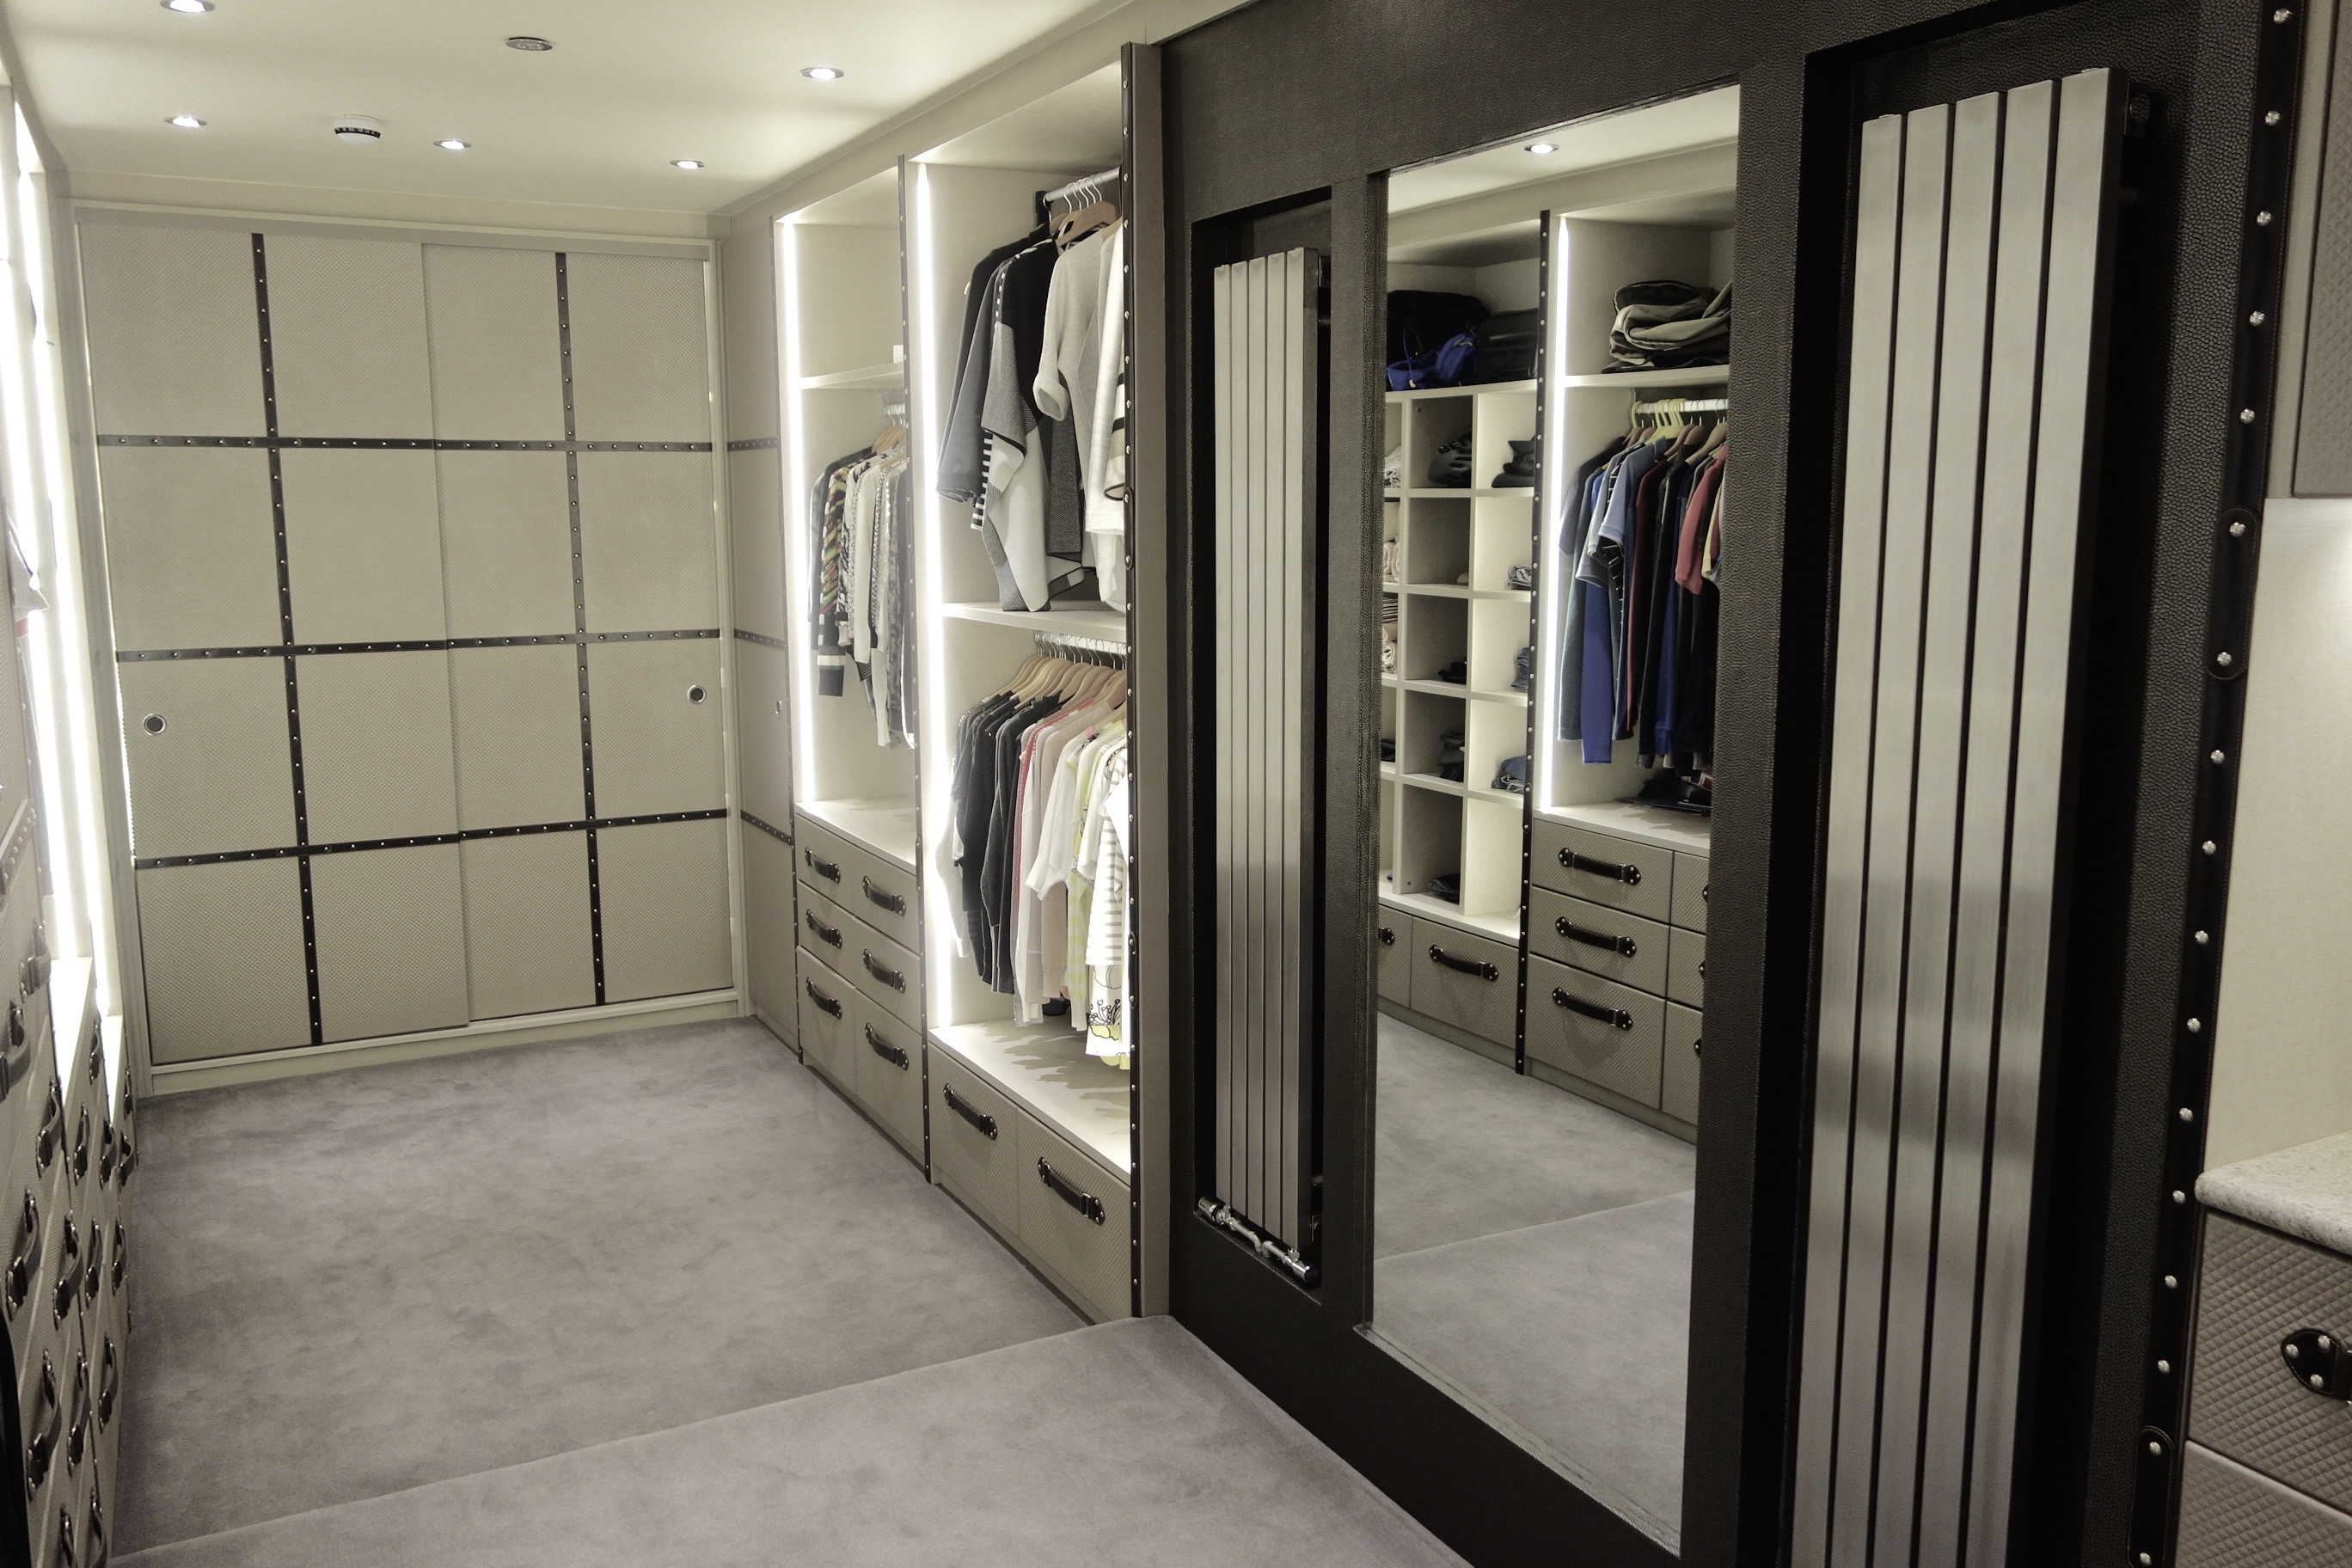 luxury walk in wardrobe, walk in wardrobes, sliding door wardrobes, leather walk in wardrobe, fitted walk in wardrobe, bespoke walk in wardrobe, fitted wardrobes